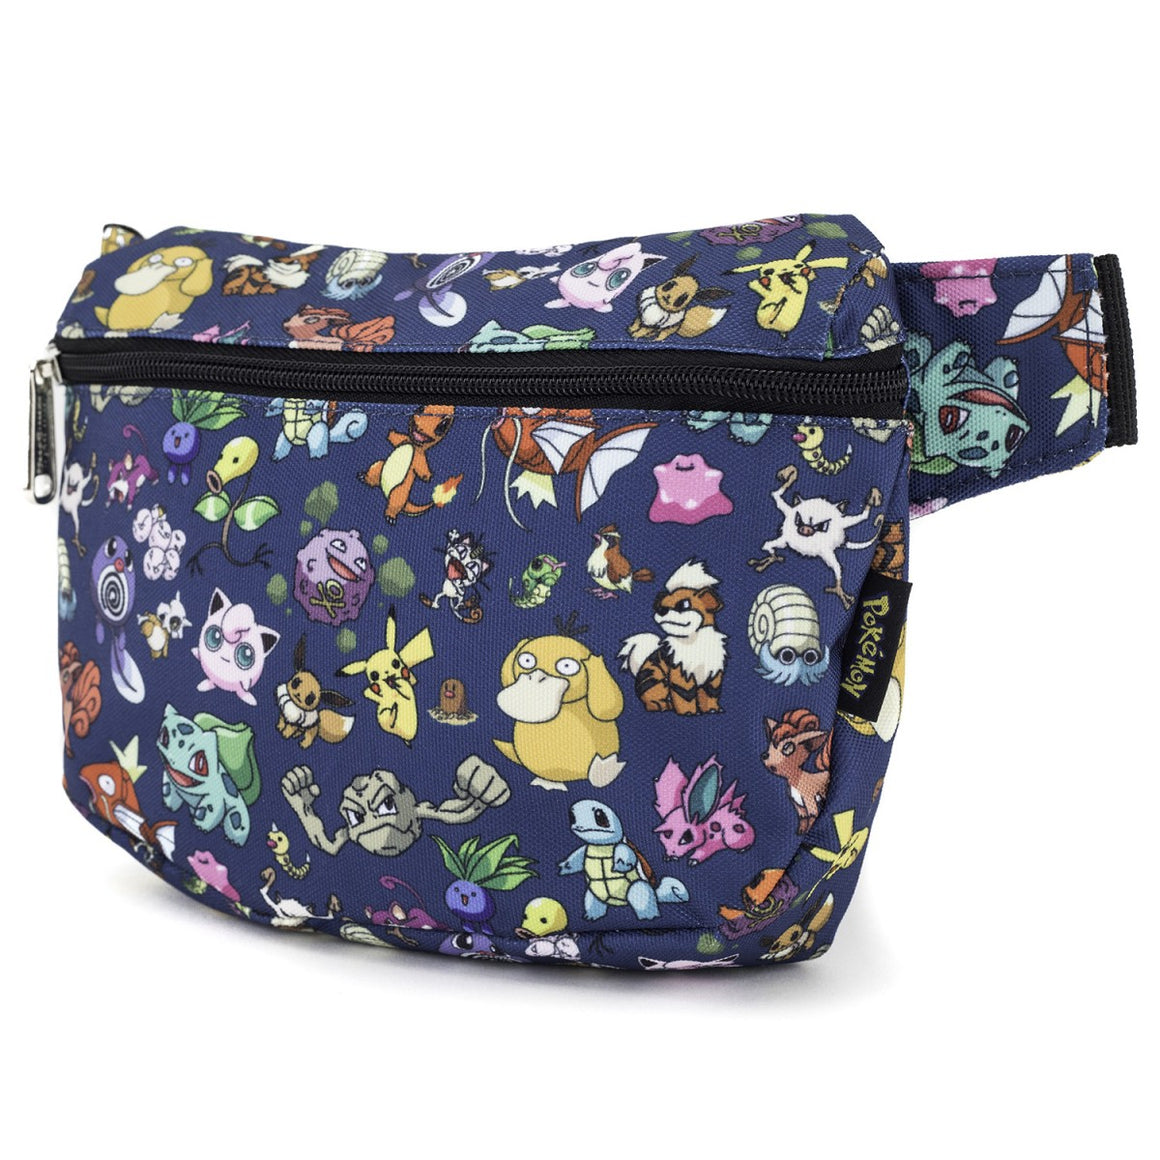 Loungefly x Pokémon First Generation Print Fanny Pack